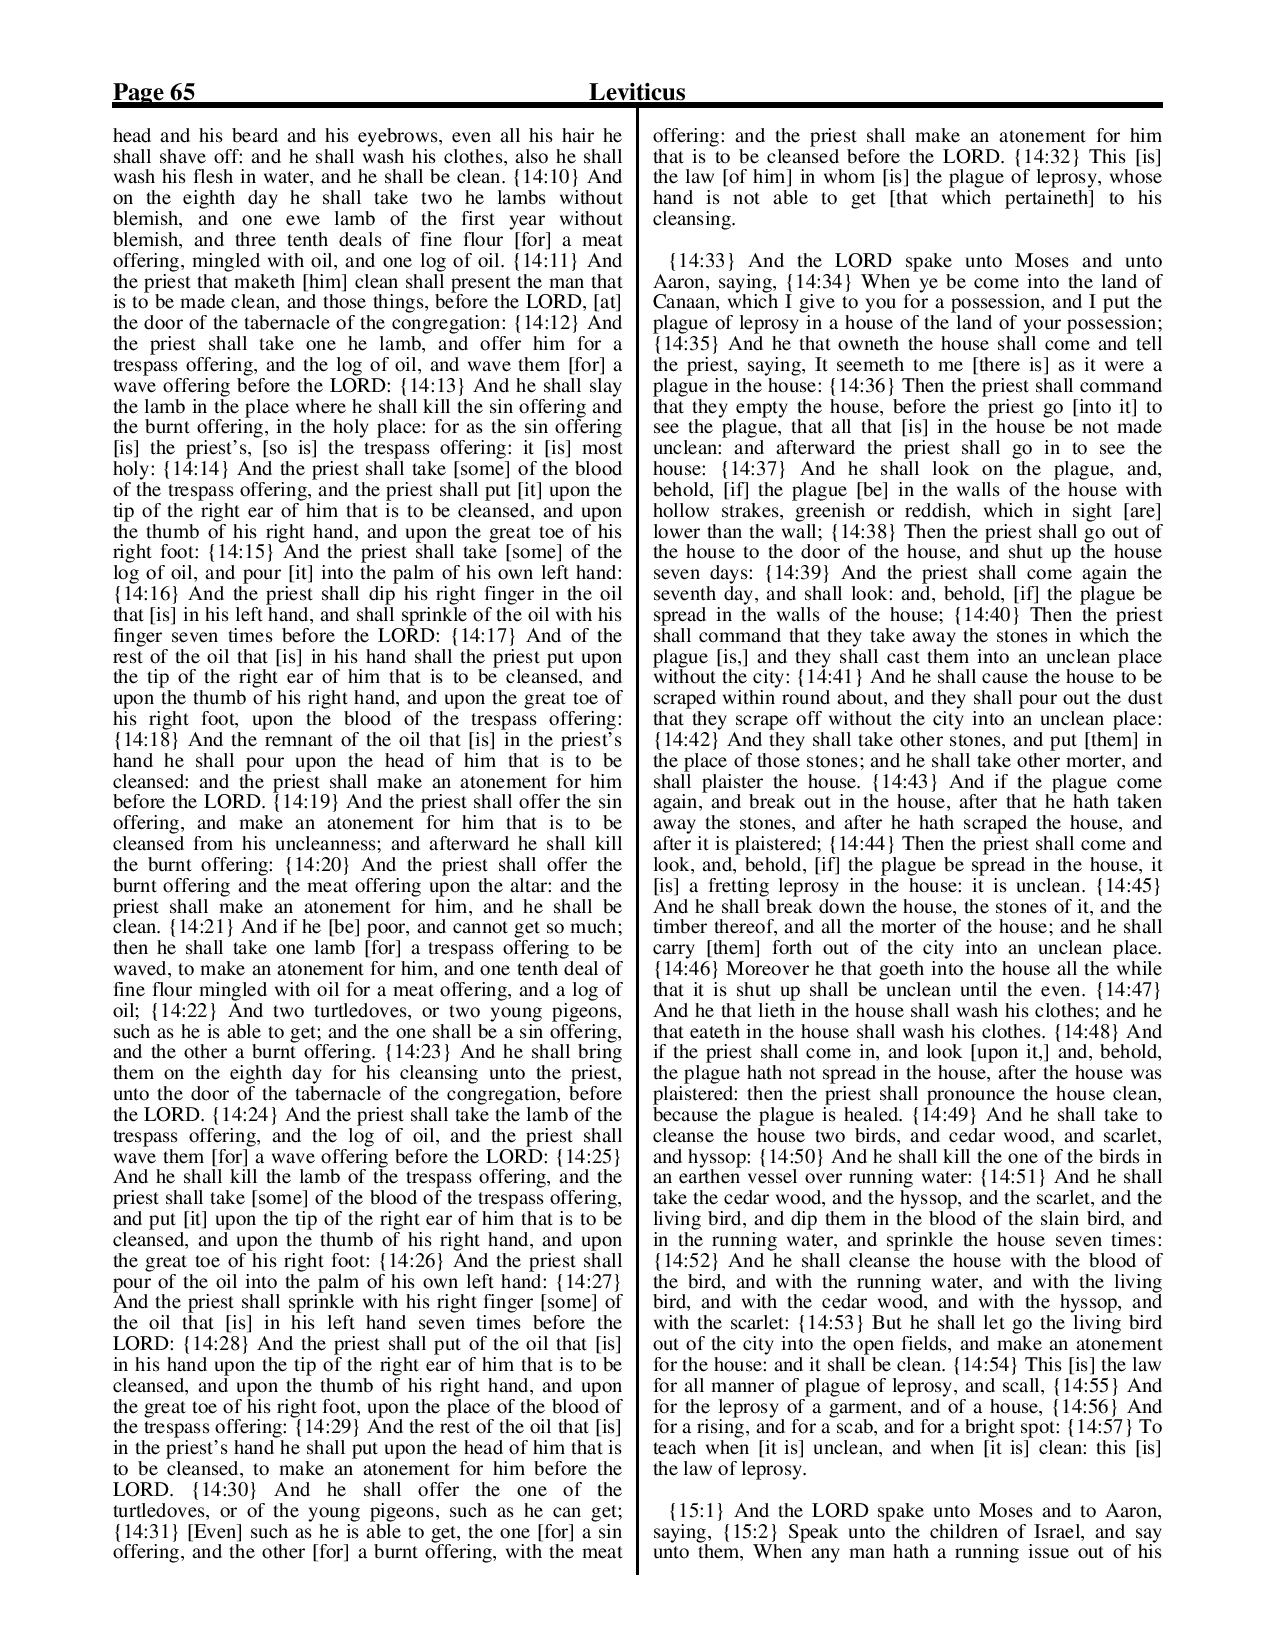 King-James-Bible-KJV-Bible-PDF-page-086